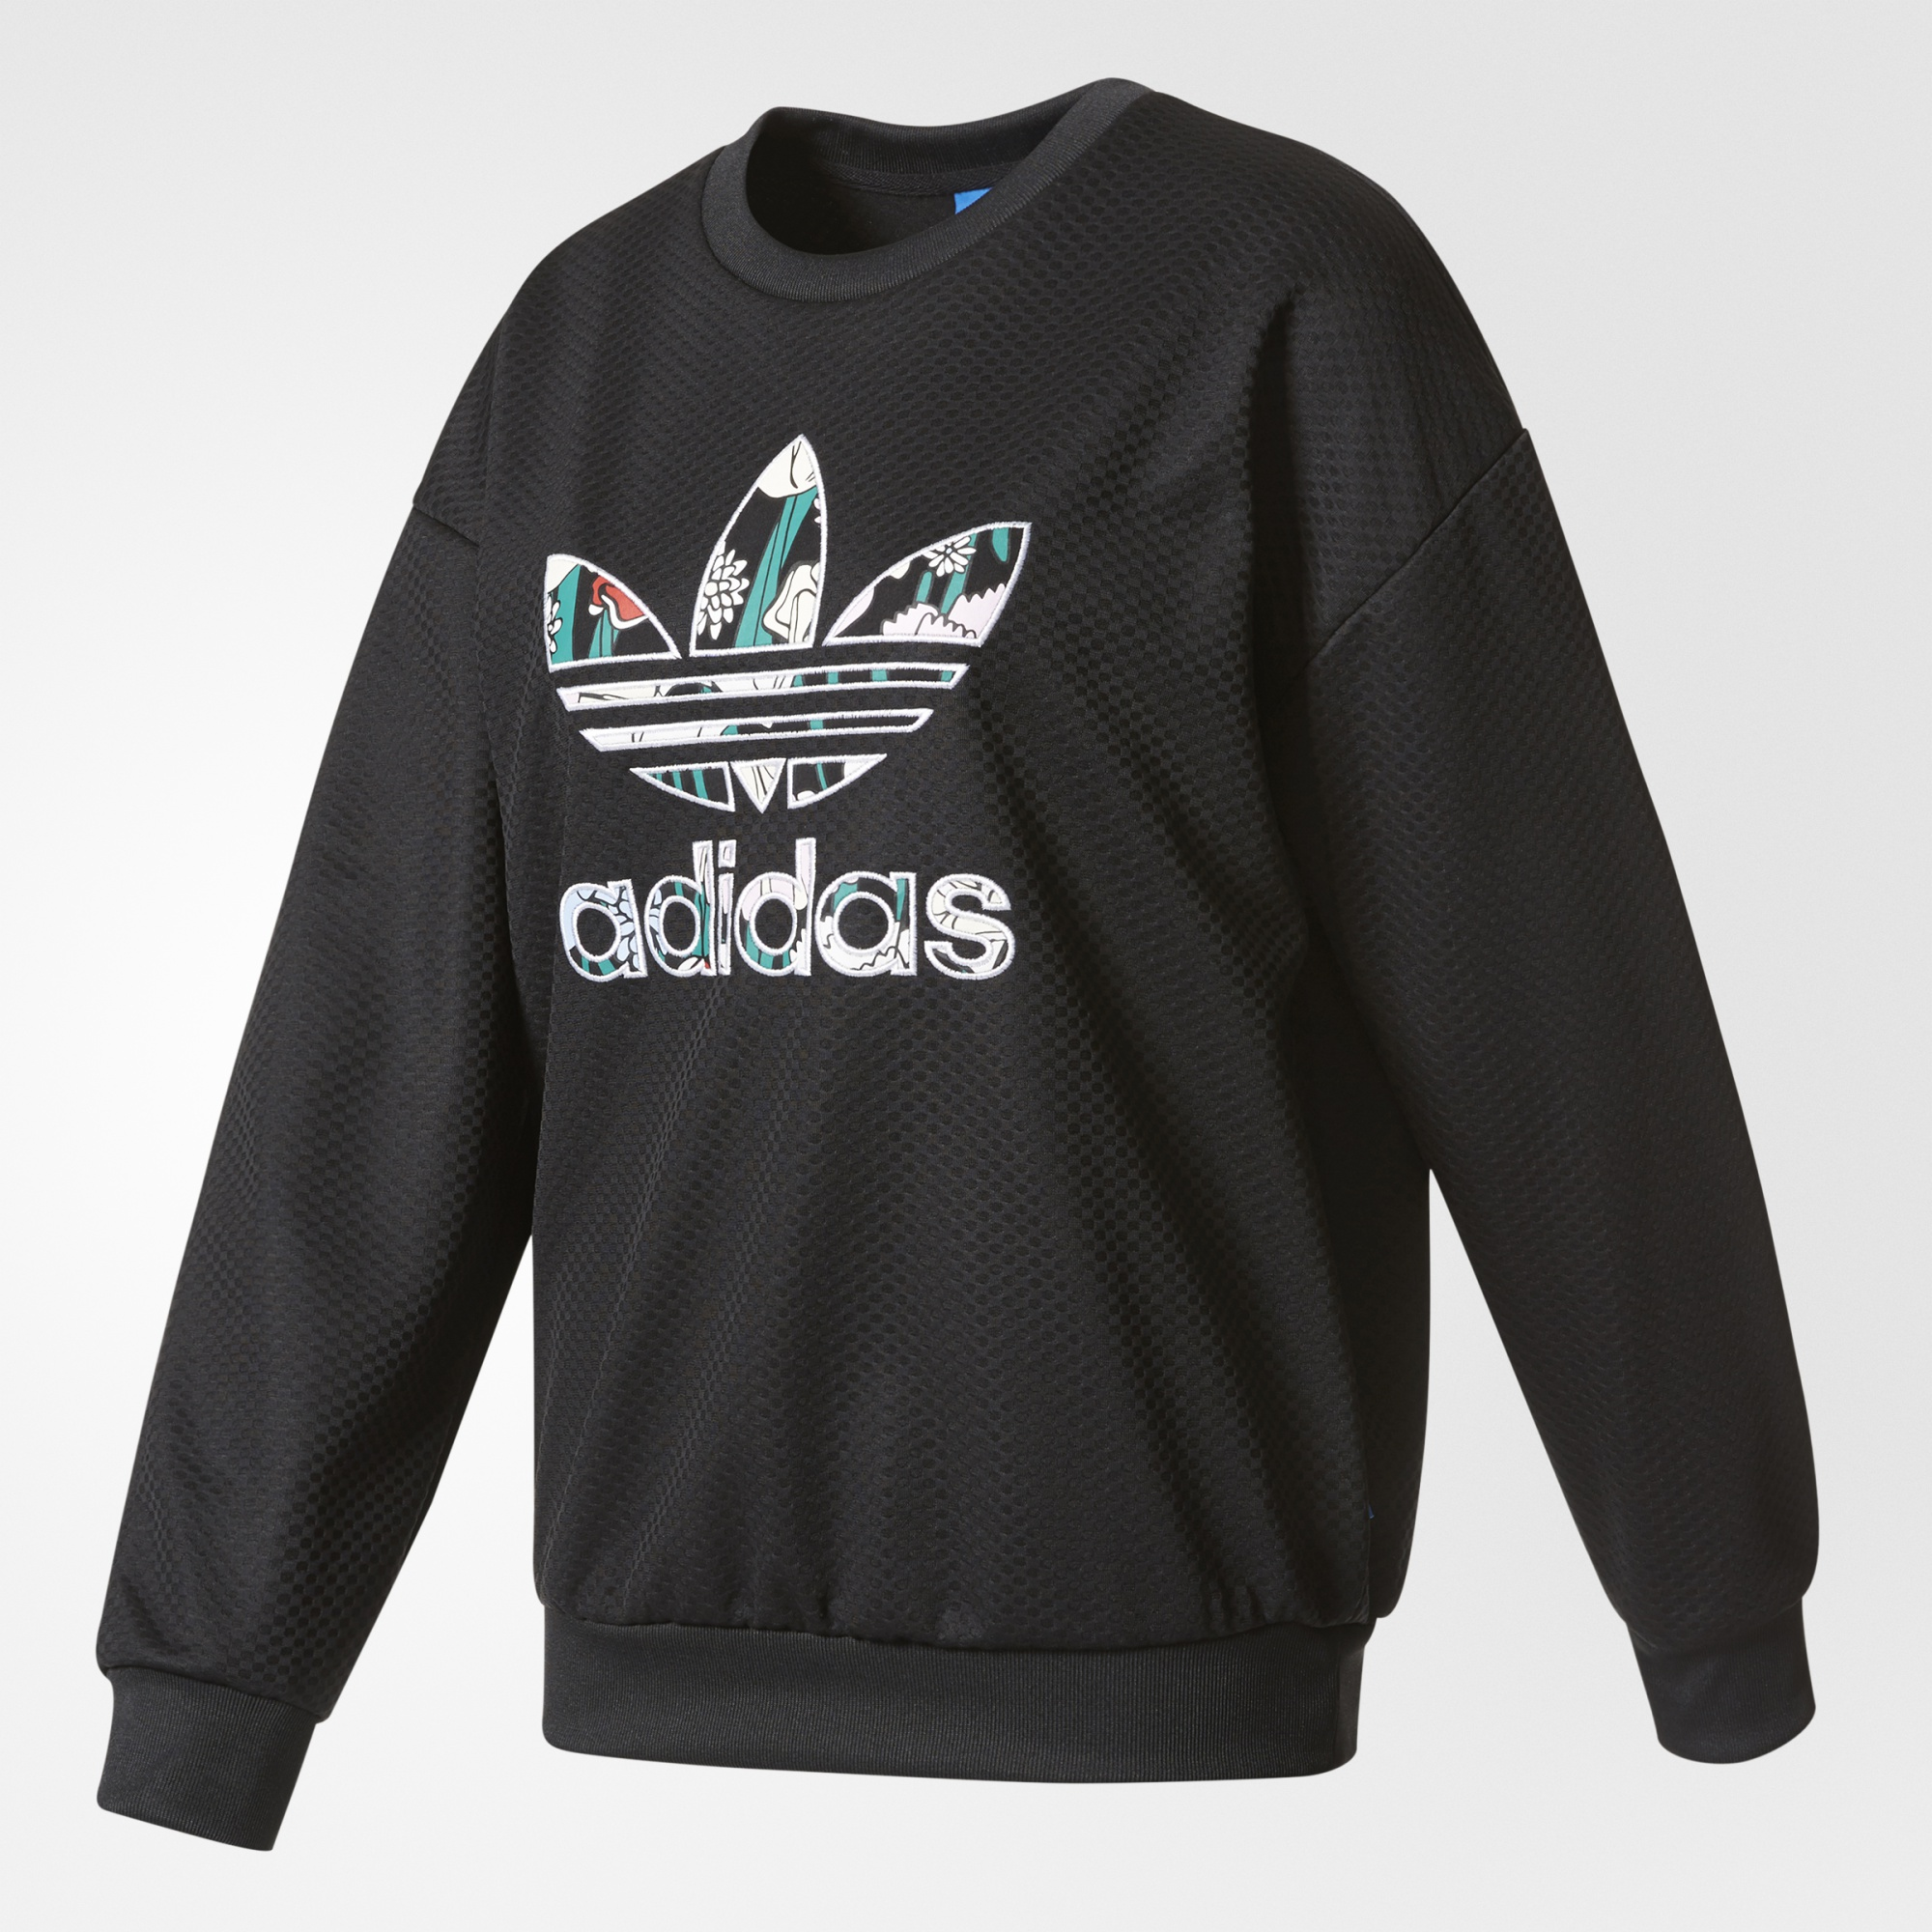 Available from 10.11 Adidas Comprehensive training sweater AY7963 воланы для бадминтона adidas d training 79 перо быстрая скорость